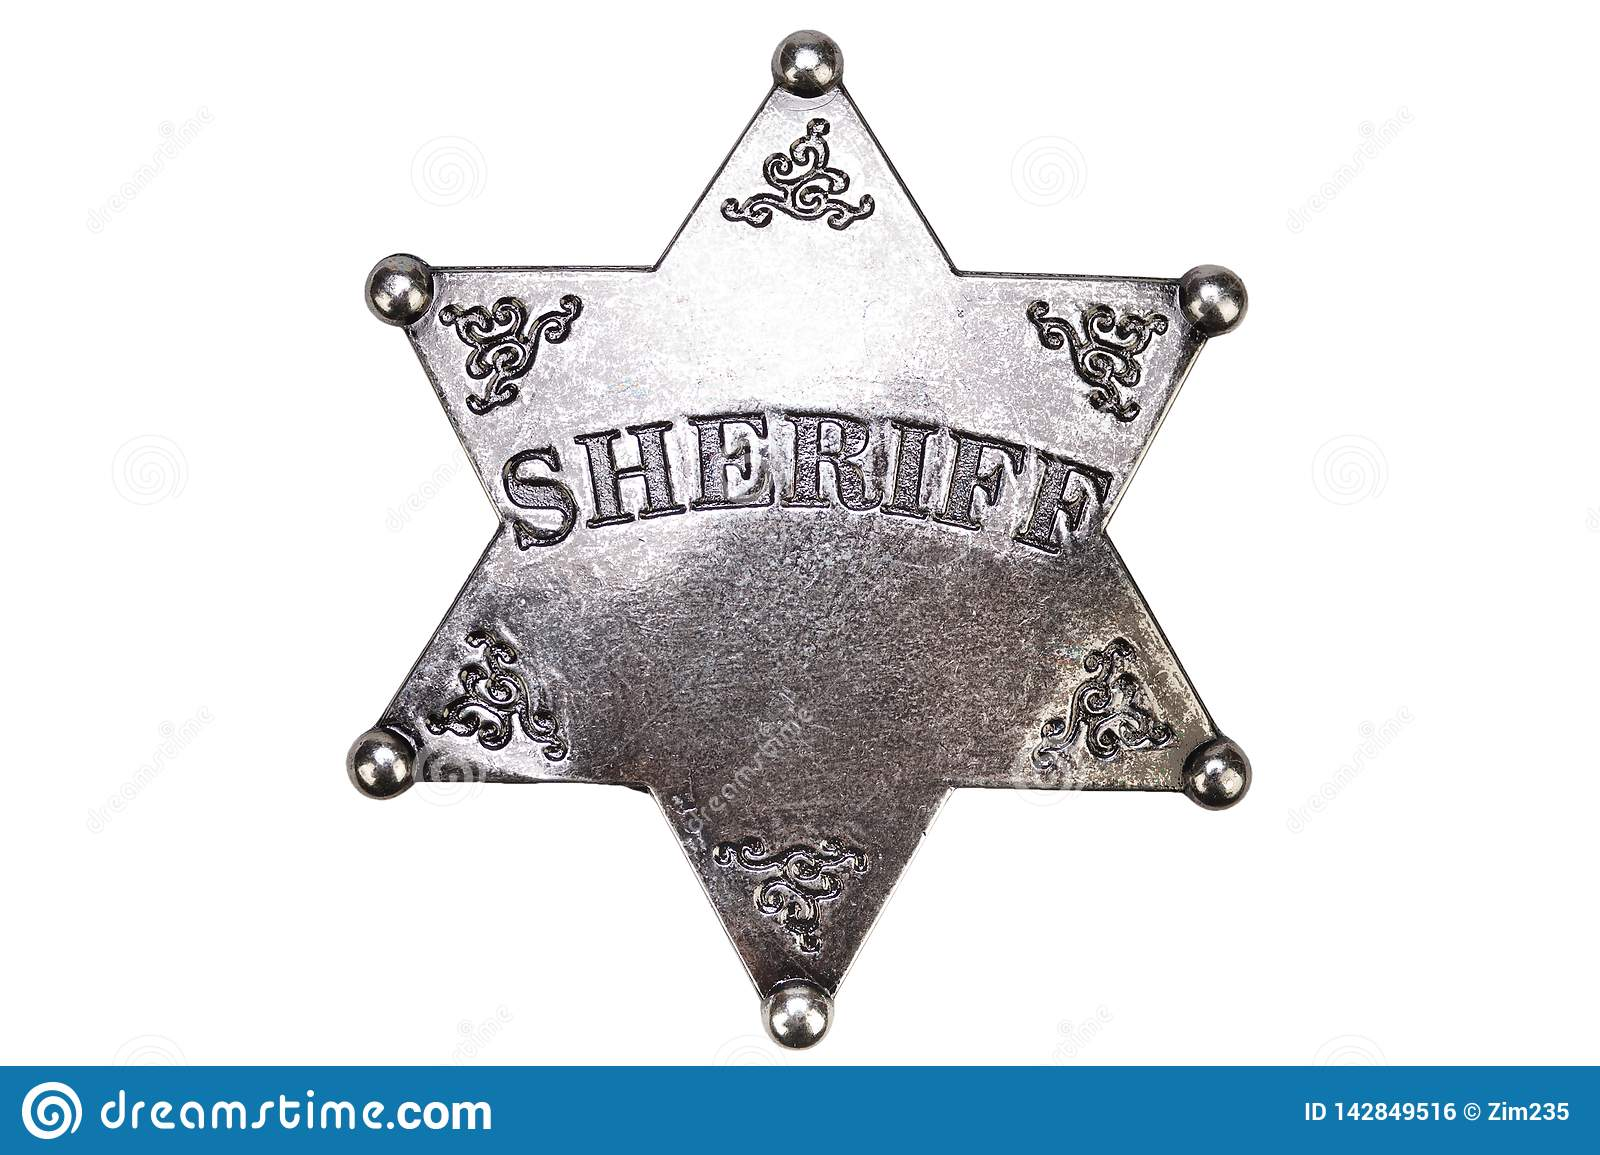 US Sheriff badge from the wild west